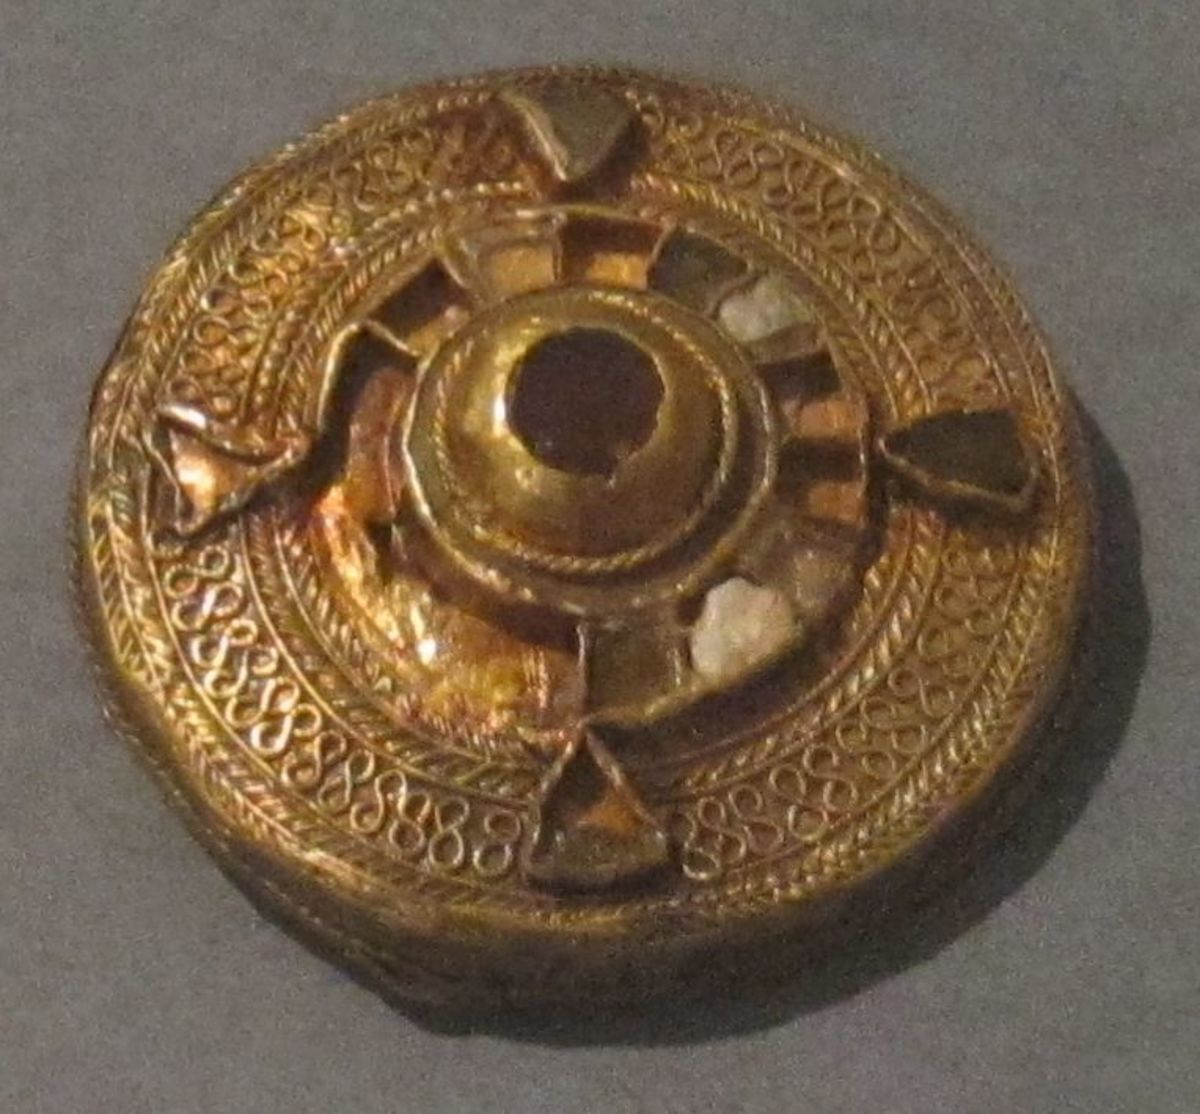 Early Middle Ages/Dark Ages garment brooch from between 400–700 CE.